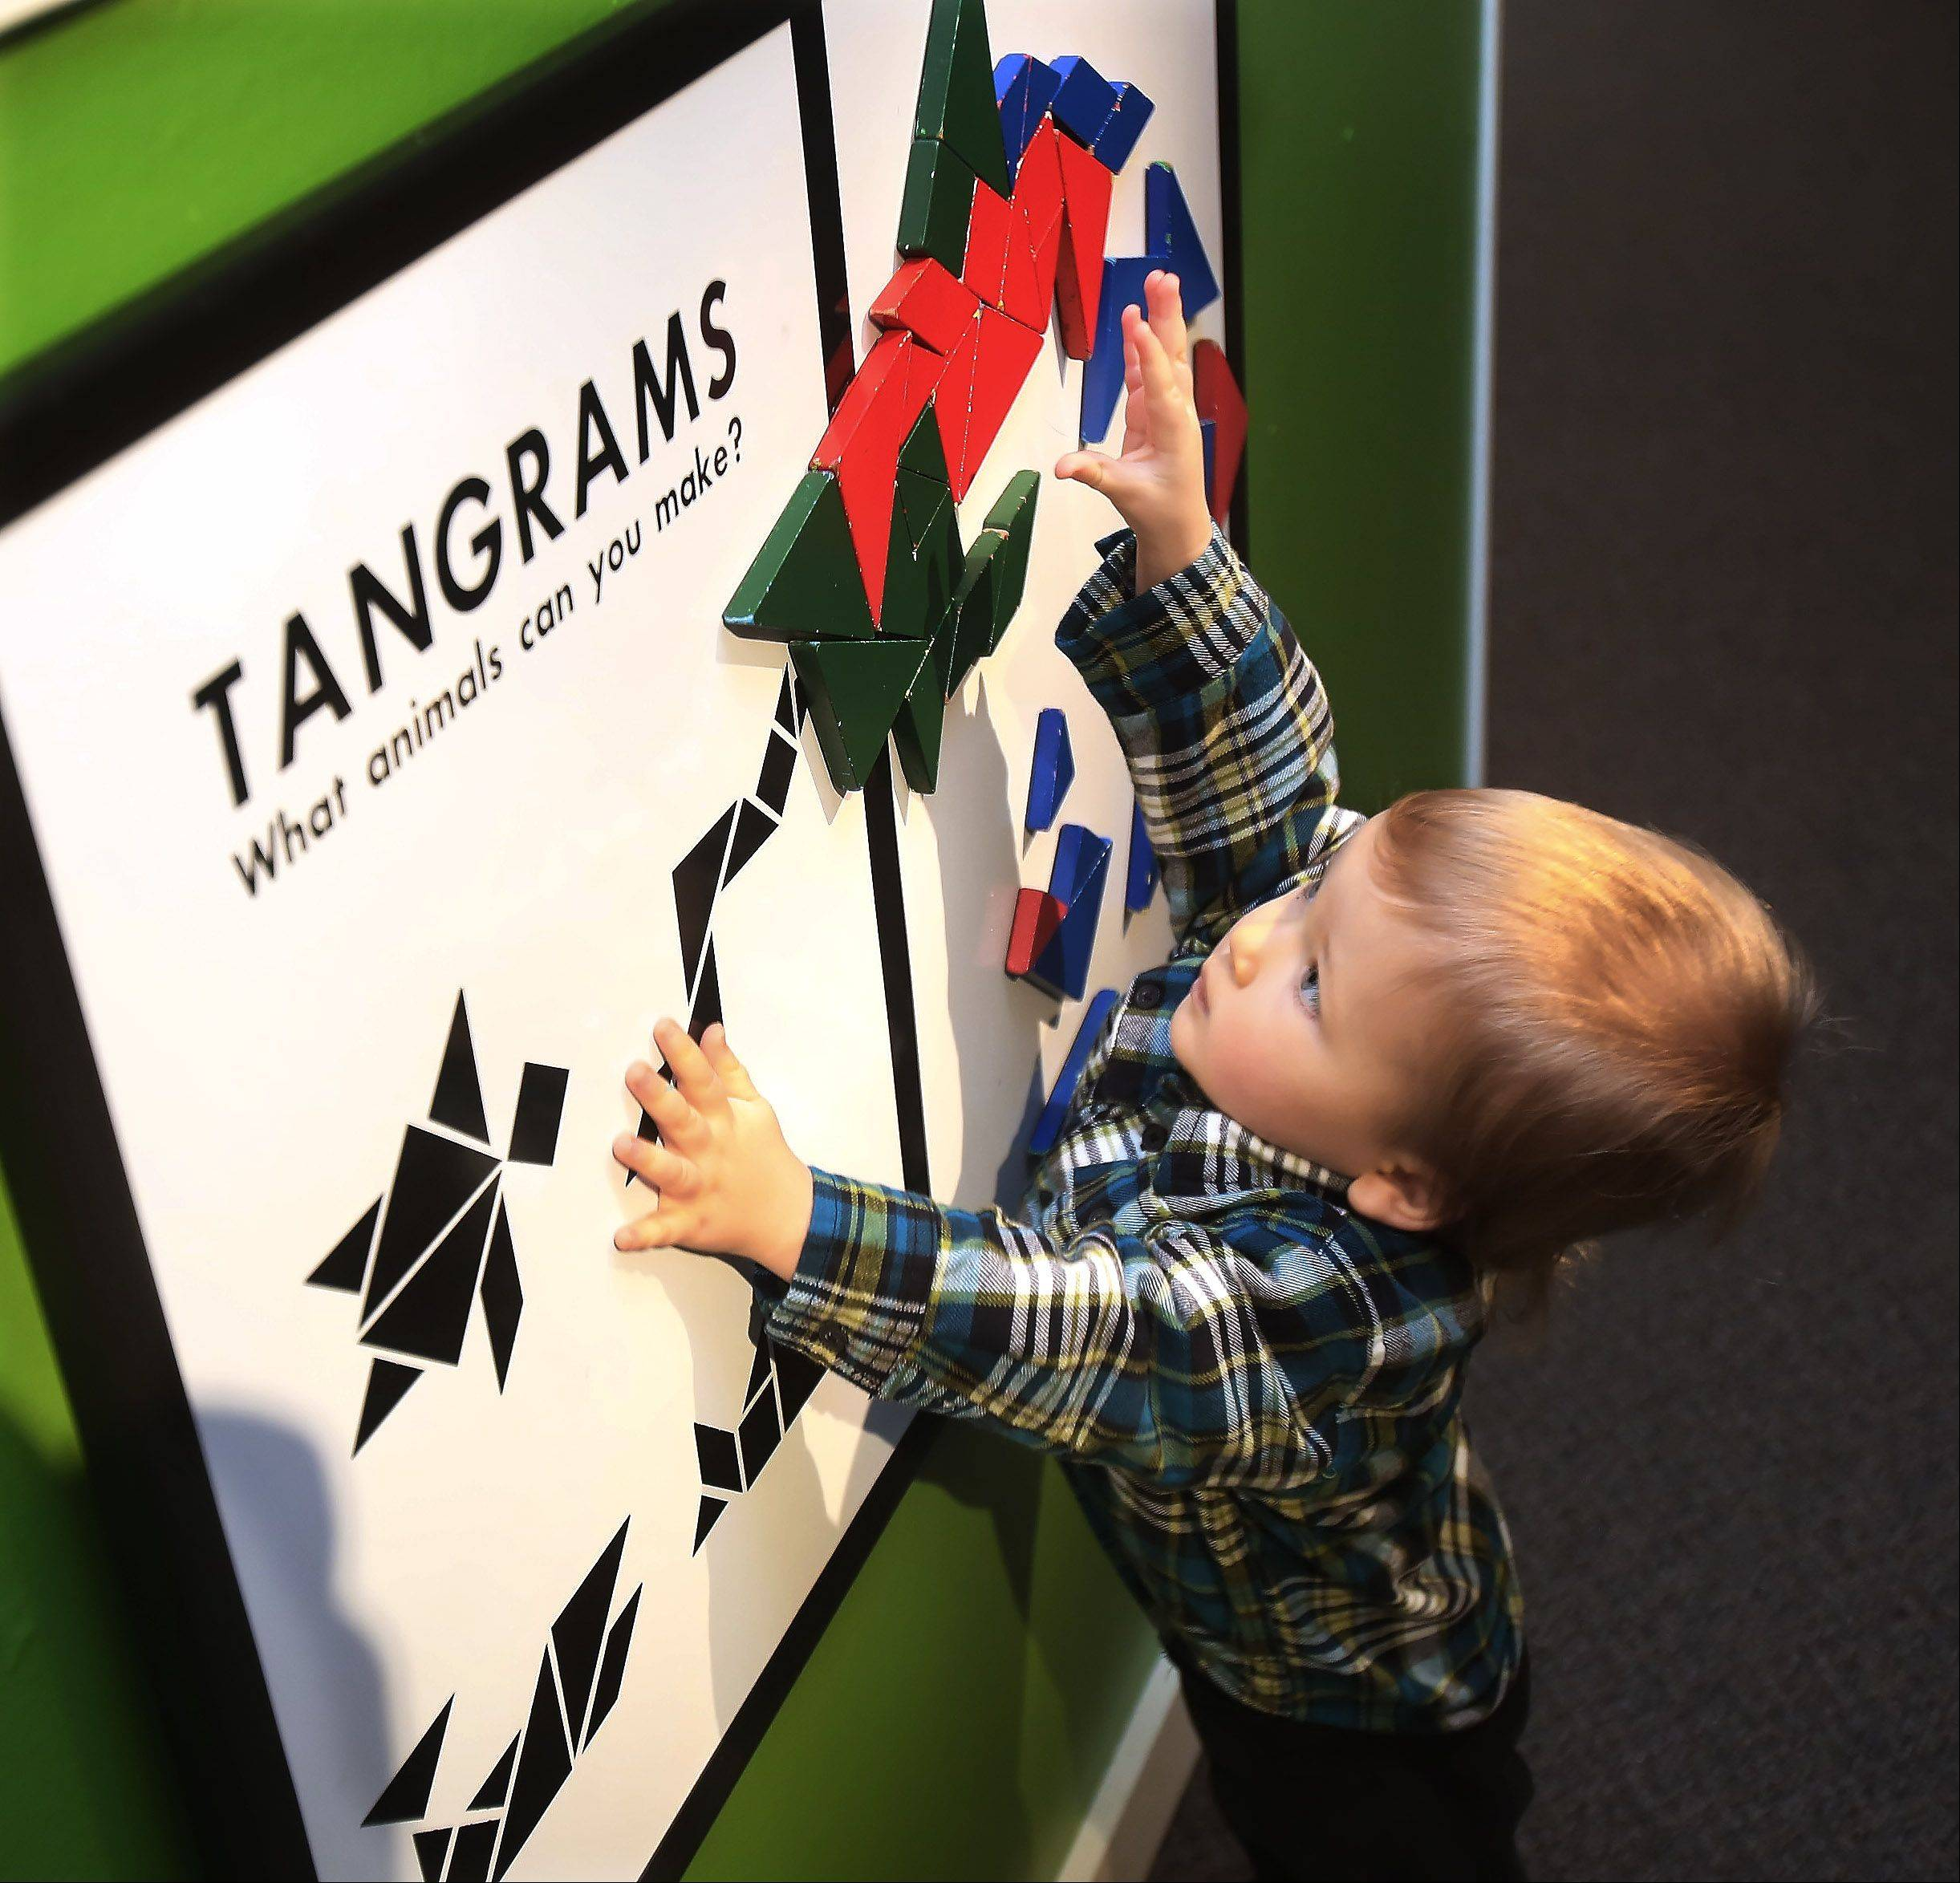 Leo Porten, 18-months-old, of Island Lake, plays with the tangrams board during the Colorful Creatures program Wednesday at the Lake County Discovery Museum near Wauconda. The Small Discoveries event focused on shapes and nature and coincided with the artwork exhibit of Charles Harper.